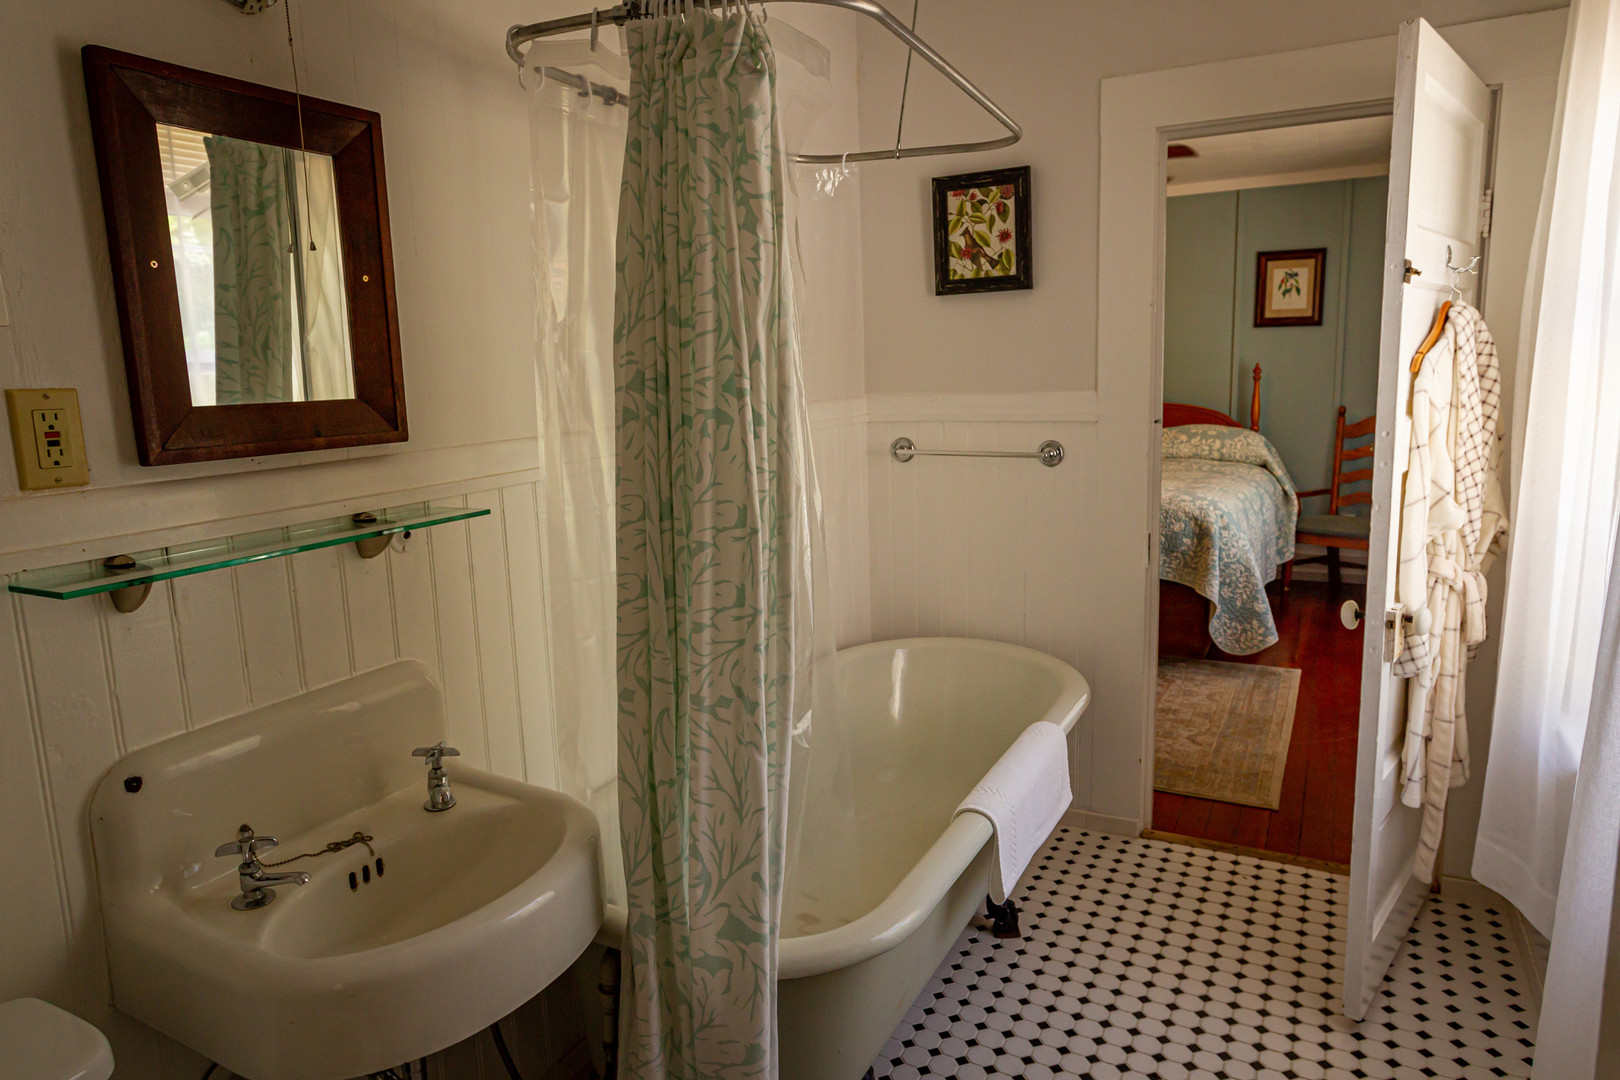 #9 Stout Grove Bathroom